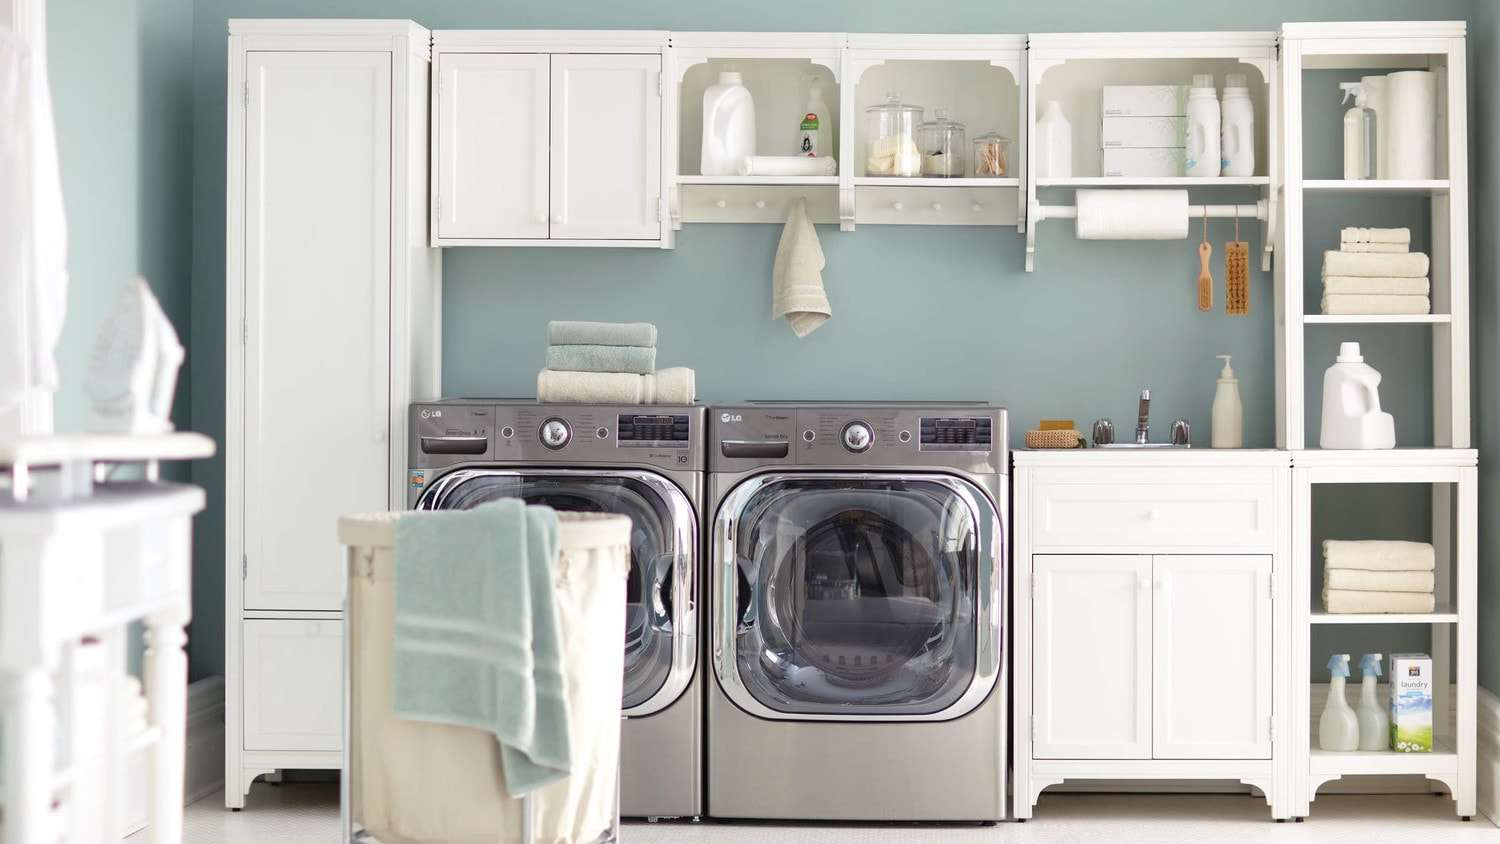 6 Steps to Get Your Laundry Room Under Control